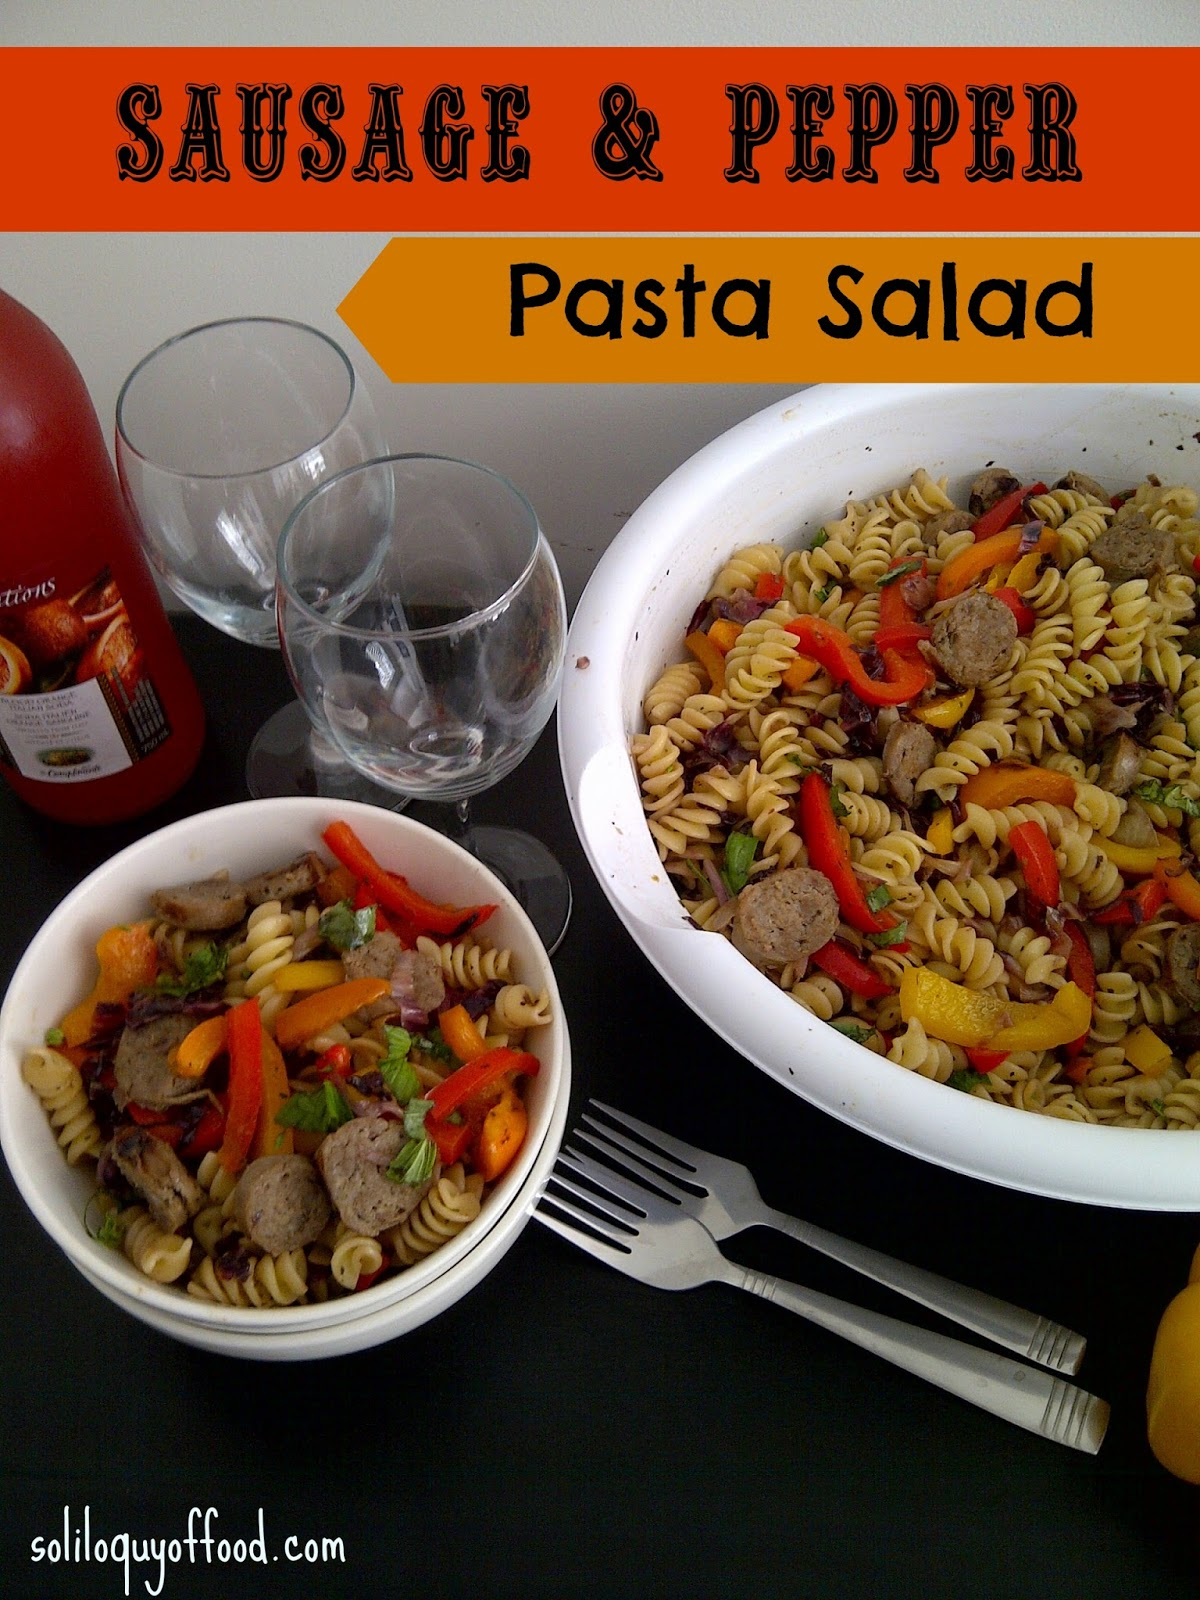 A new spin on pasta salad - Sausage & Pepper Pasta Salad - www.soliloquyoffood.com